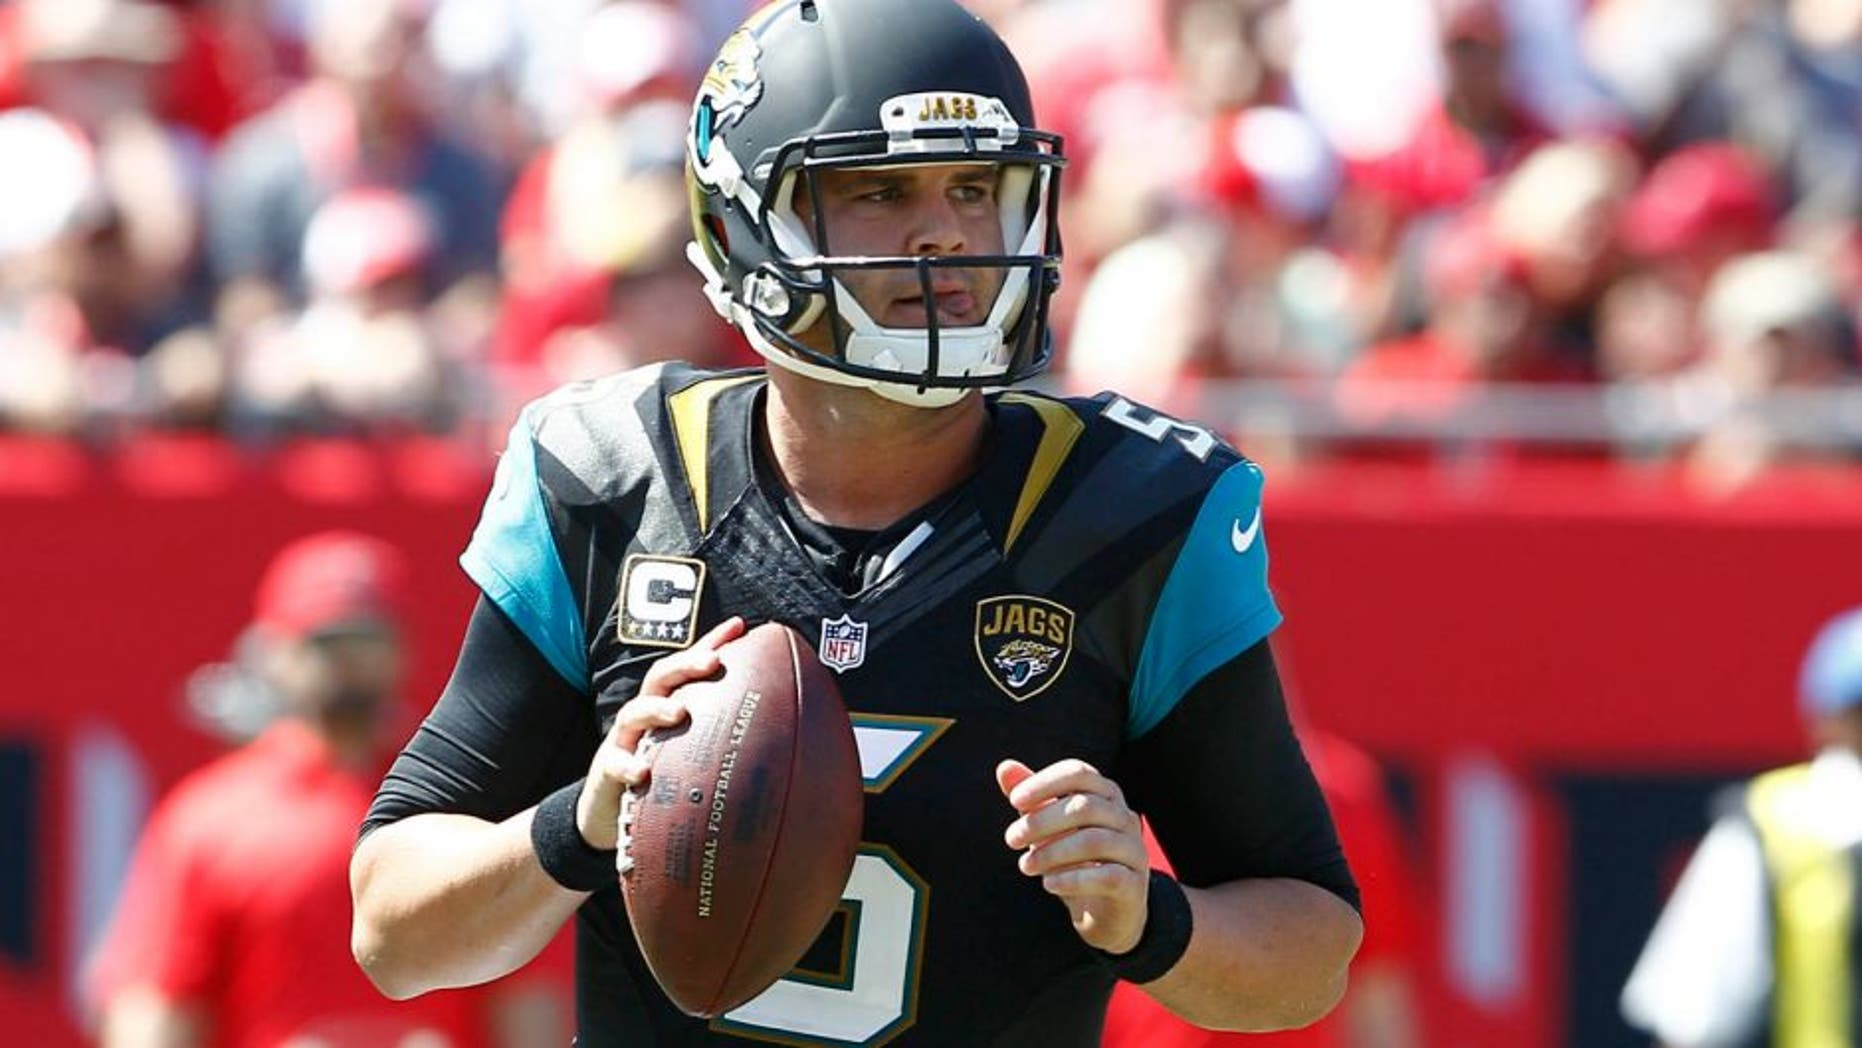 Oct 11, 2015; Tampa, FL, USA; Jacksonville Jaguars quarterback Blake Bortles (5) drops to throw a pass during the second quarter of an NFL football game against the Tampa Bay Buccaneers at Raymond James Stadium. Mandatory Credit: Reinhold Matay-USA TODAY Sports